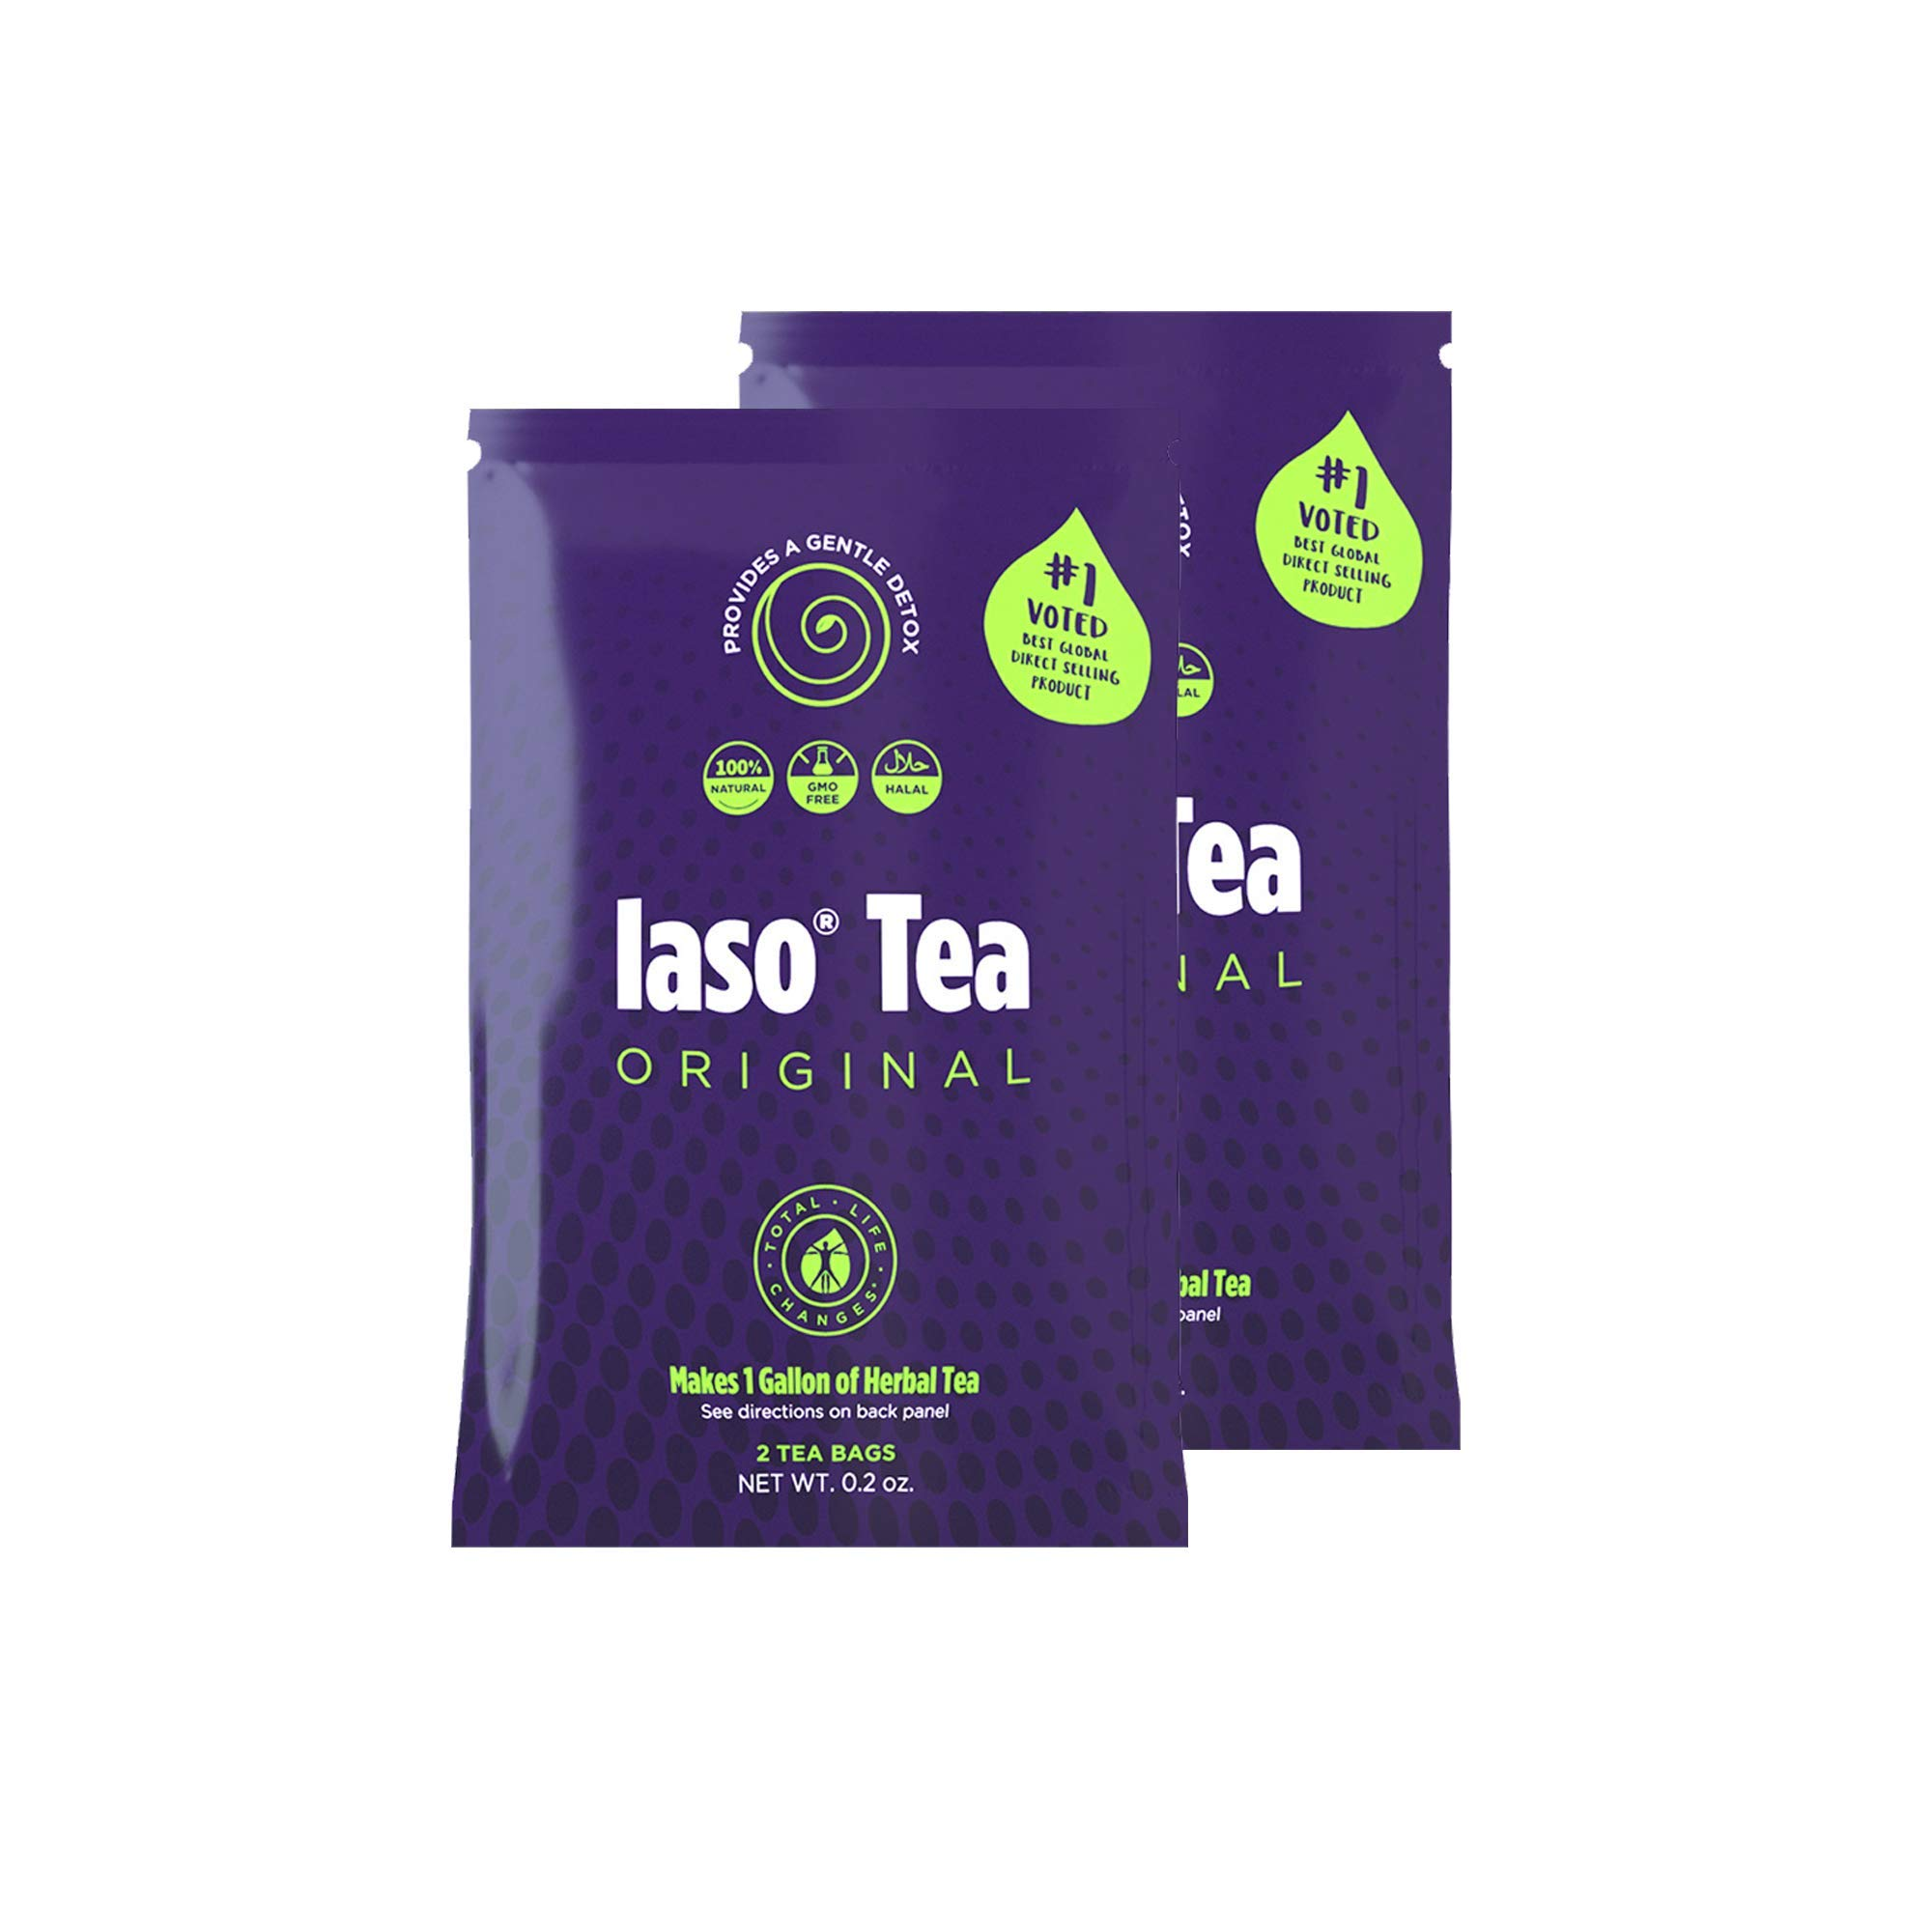 TLC Total Life Changes IASO Natural Herbal Detox Tea Bags - Double Pack (4 Tea Bags) Packaging May Vary Between Old & New in 2019 by Total Life Changes